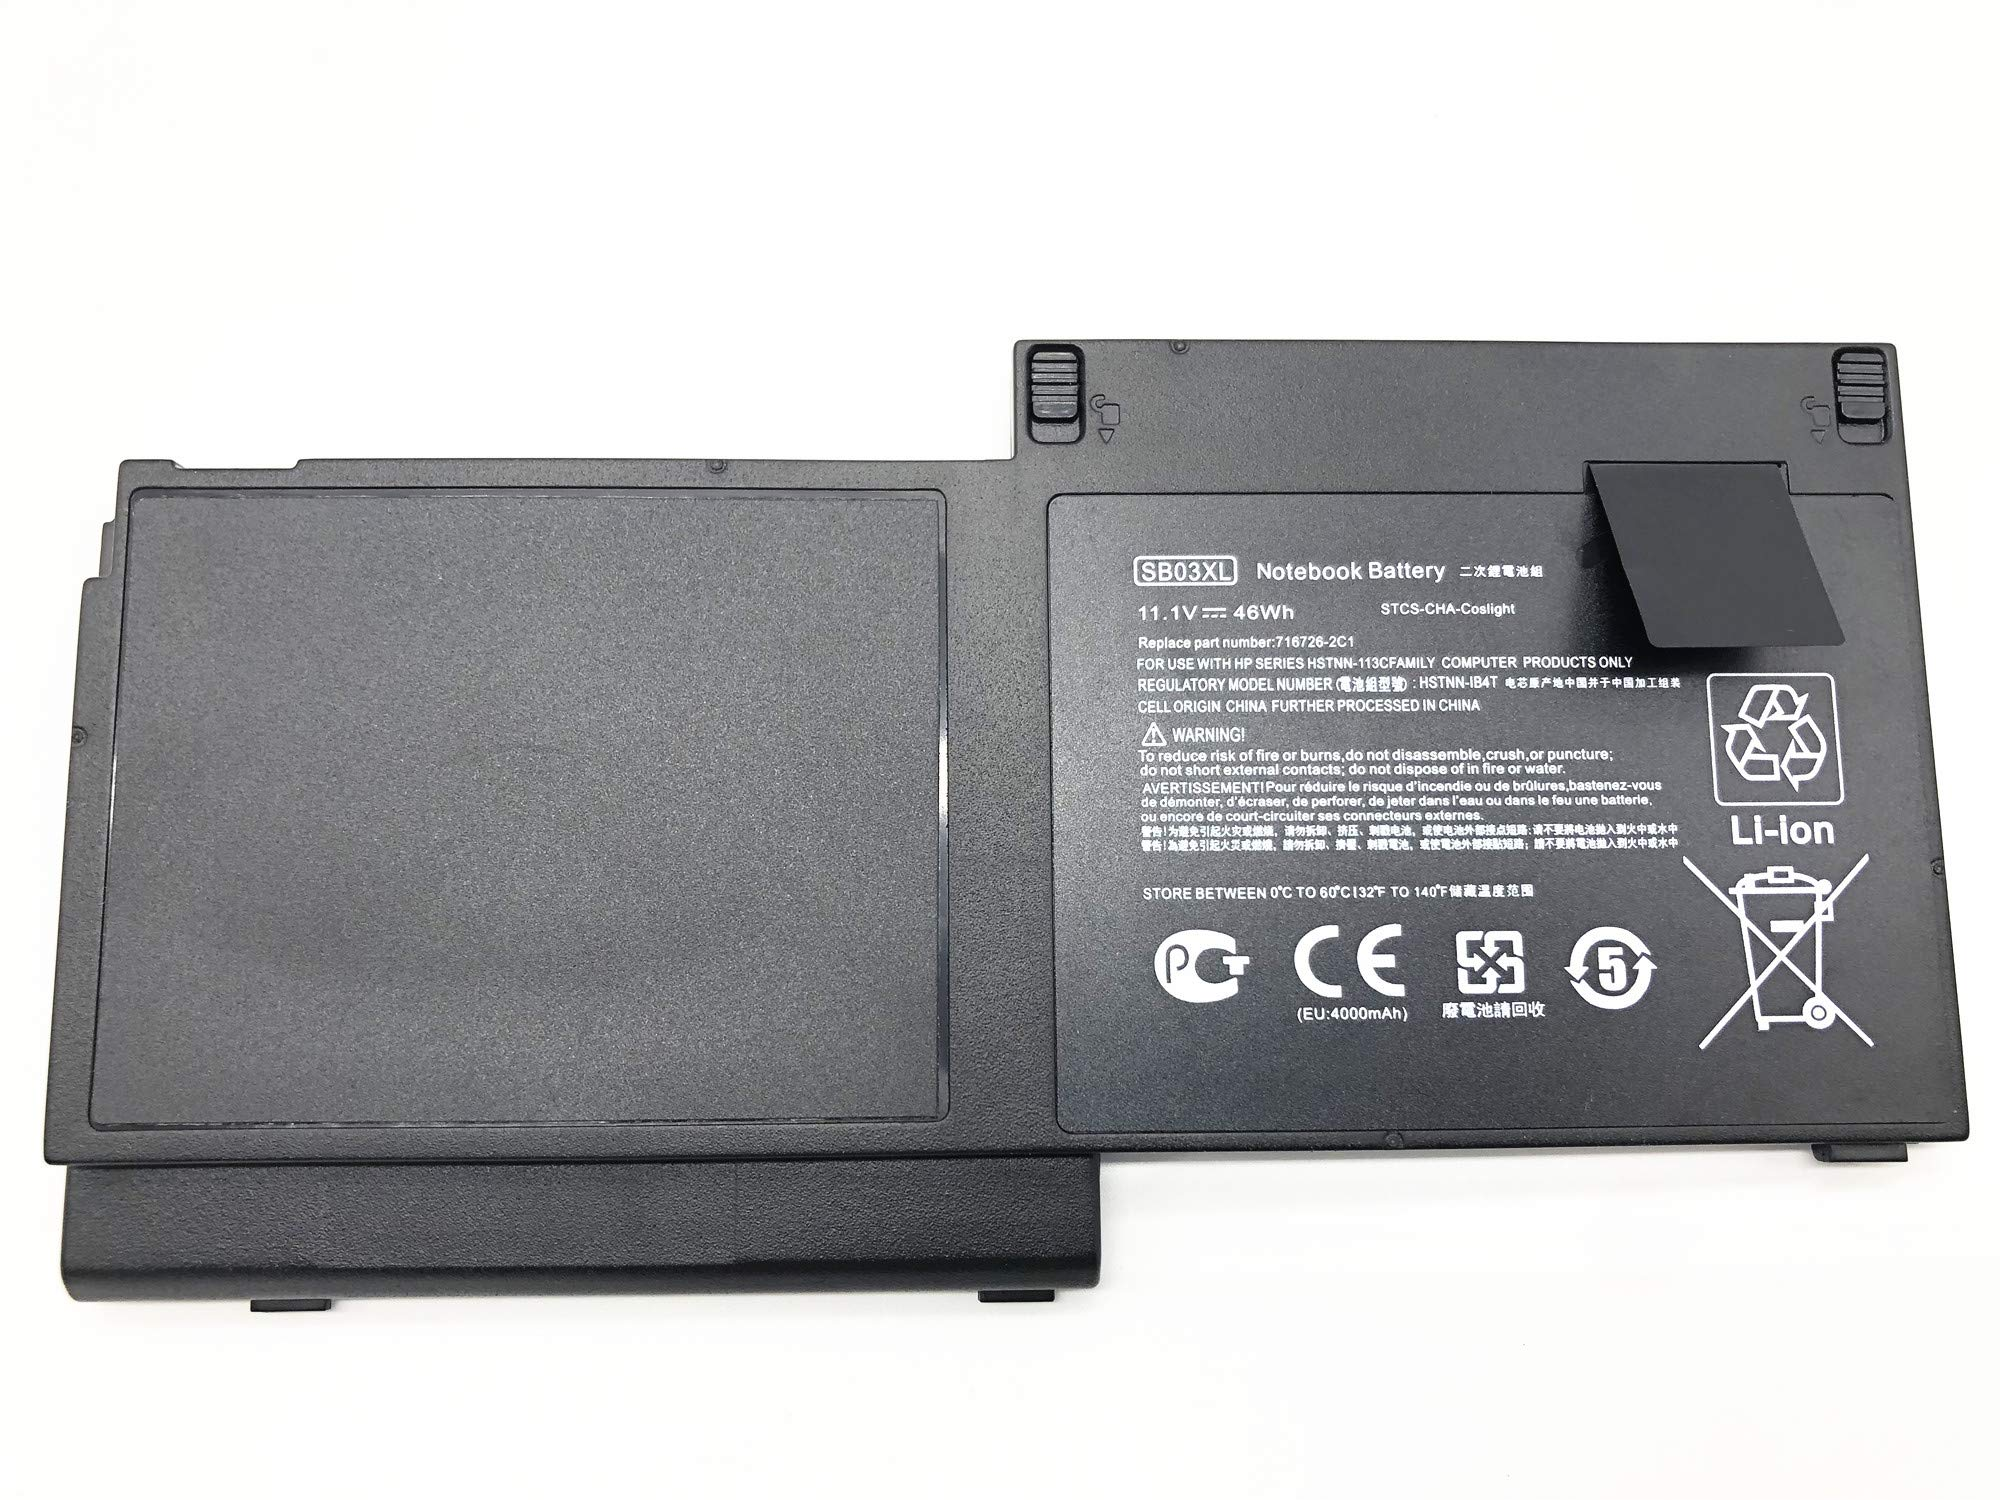 Bateria 11.1v 46wh Sb03xl Hp Elitebook 720 G1 725 G2 820 G1